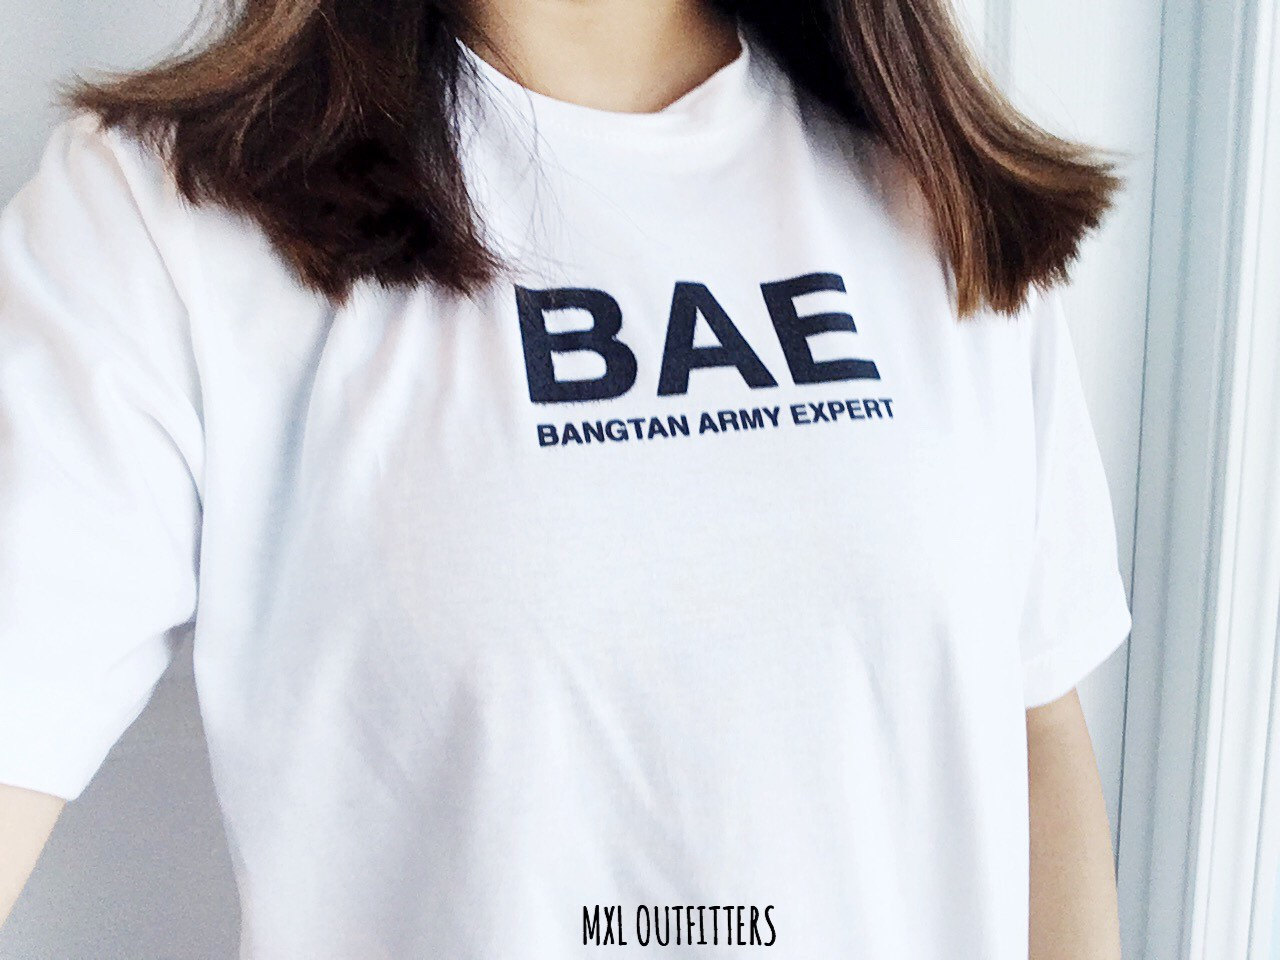 Bts T Shirt For Sale Philippines